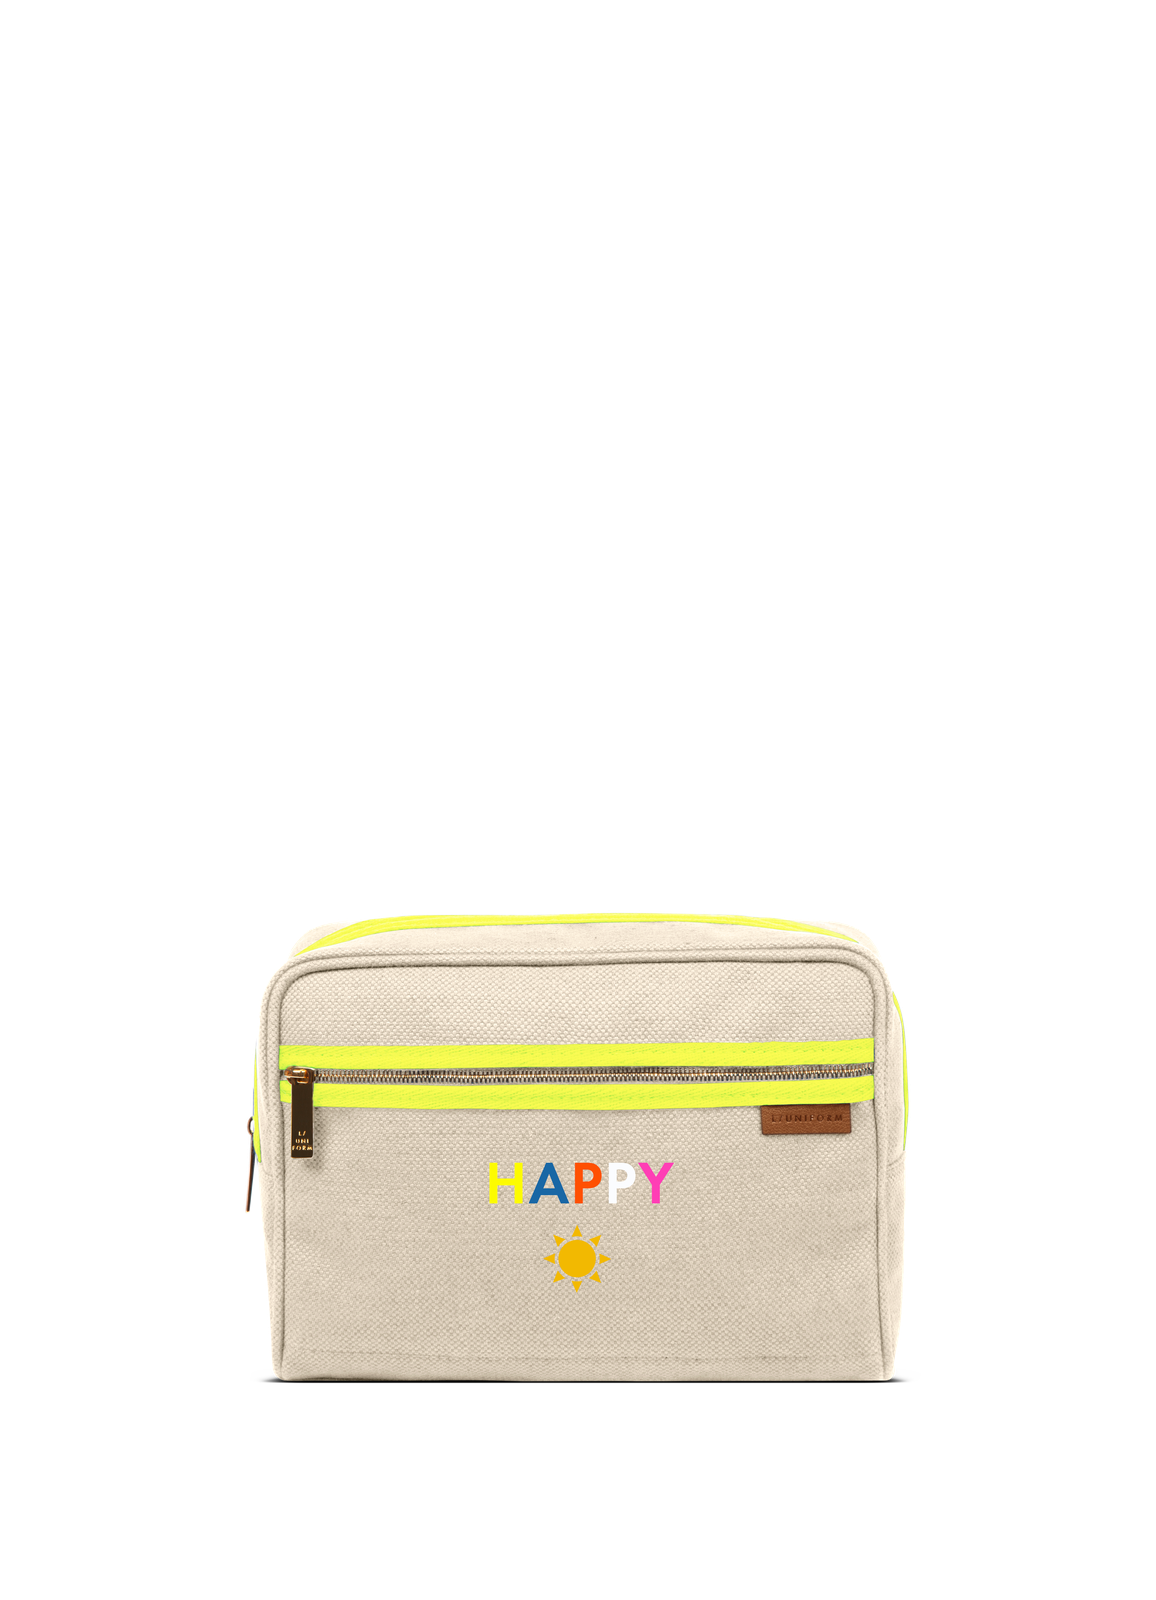 L/Uniform x Mira Mikati Happy Toiletry Bag No.19